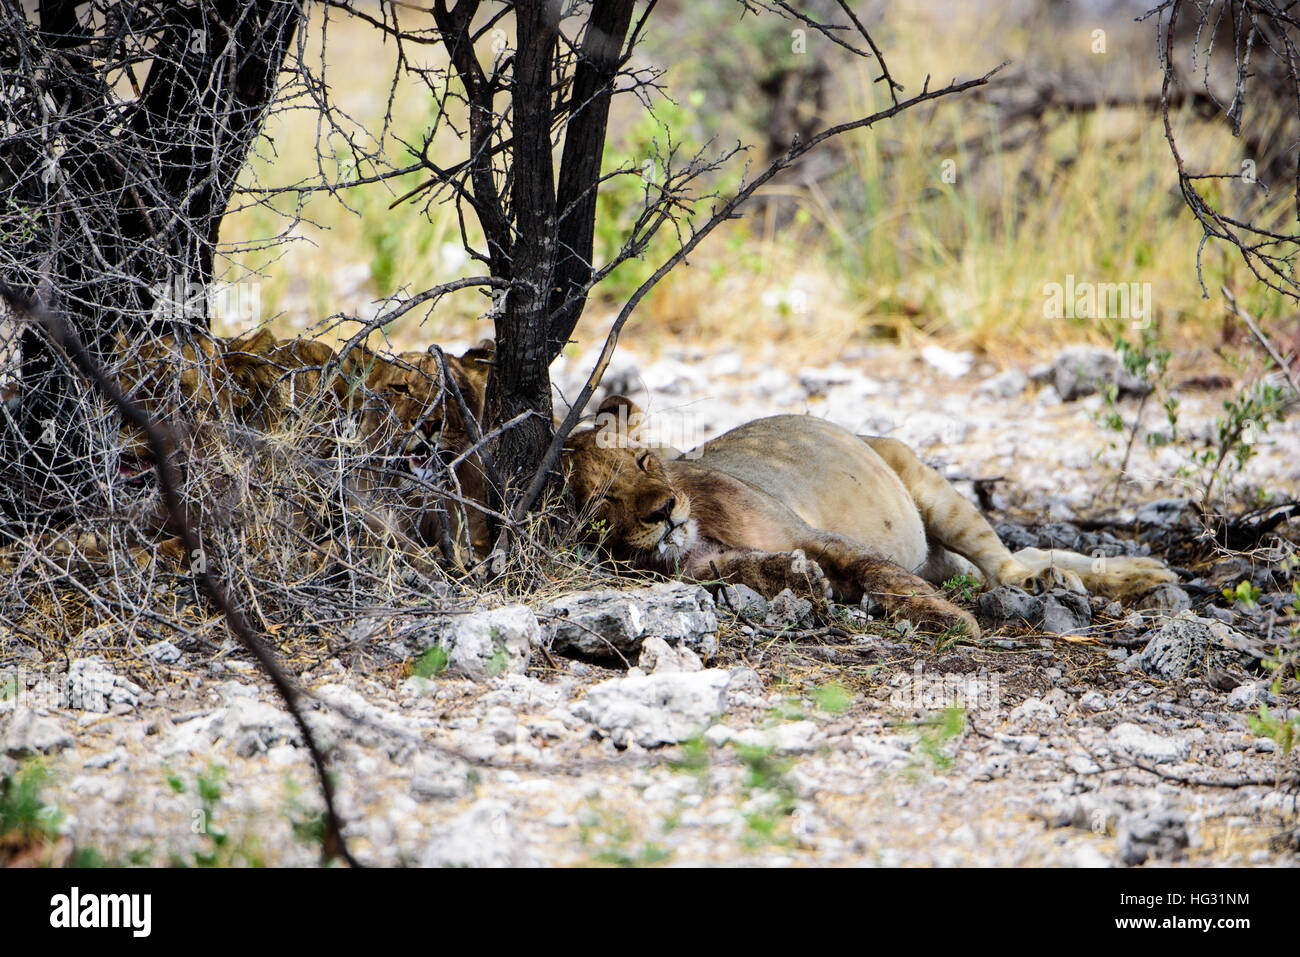 lionesses dozing under a tree - Stock Image